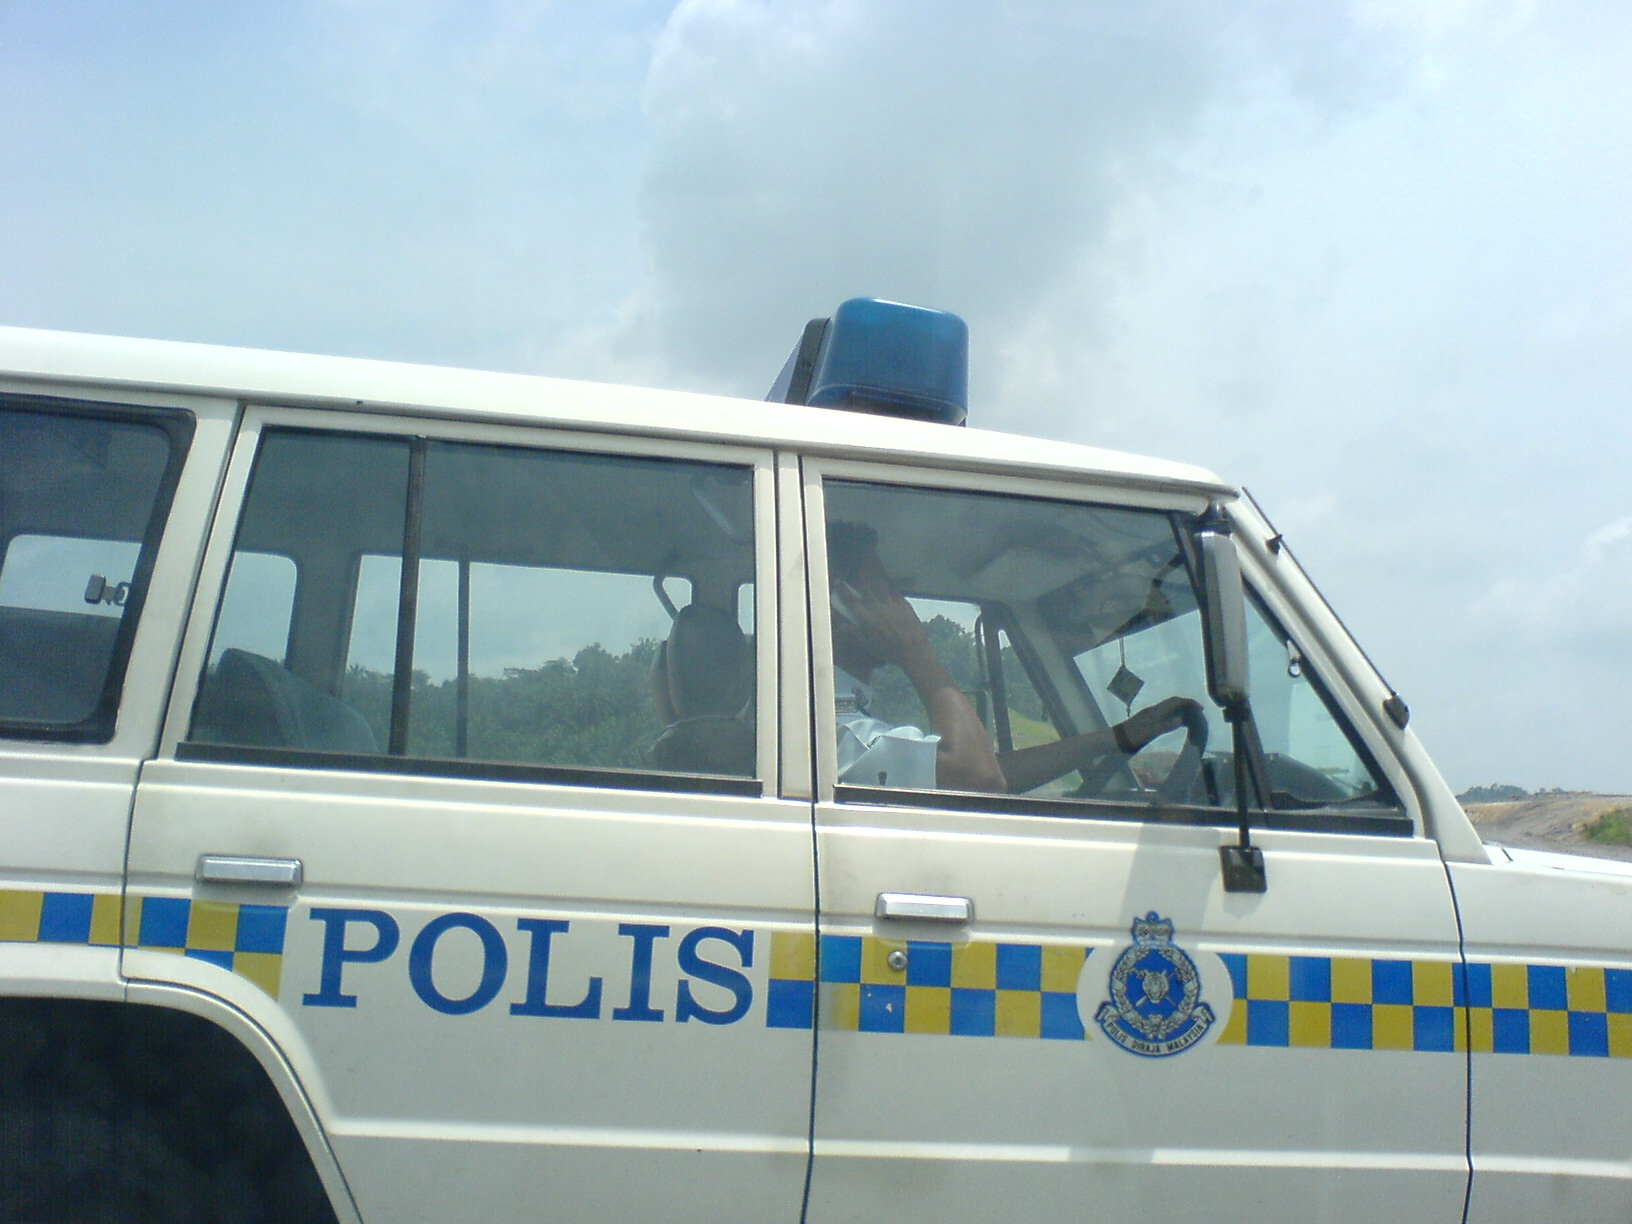 Police on the phone while driving